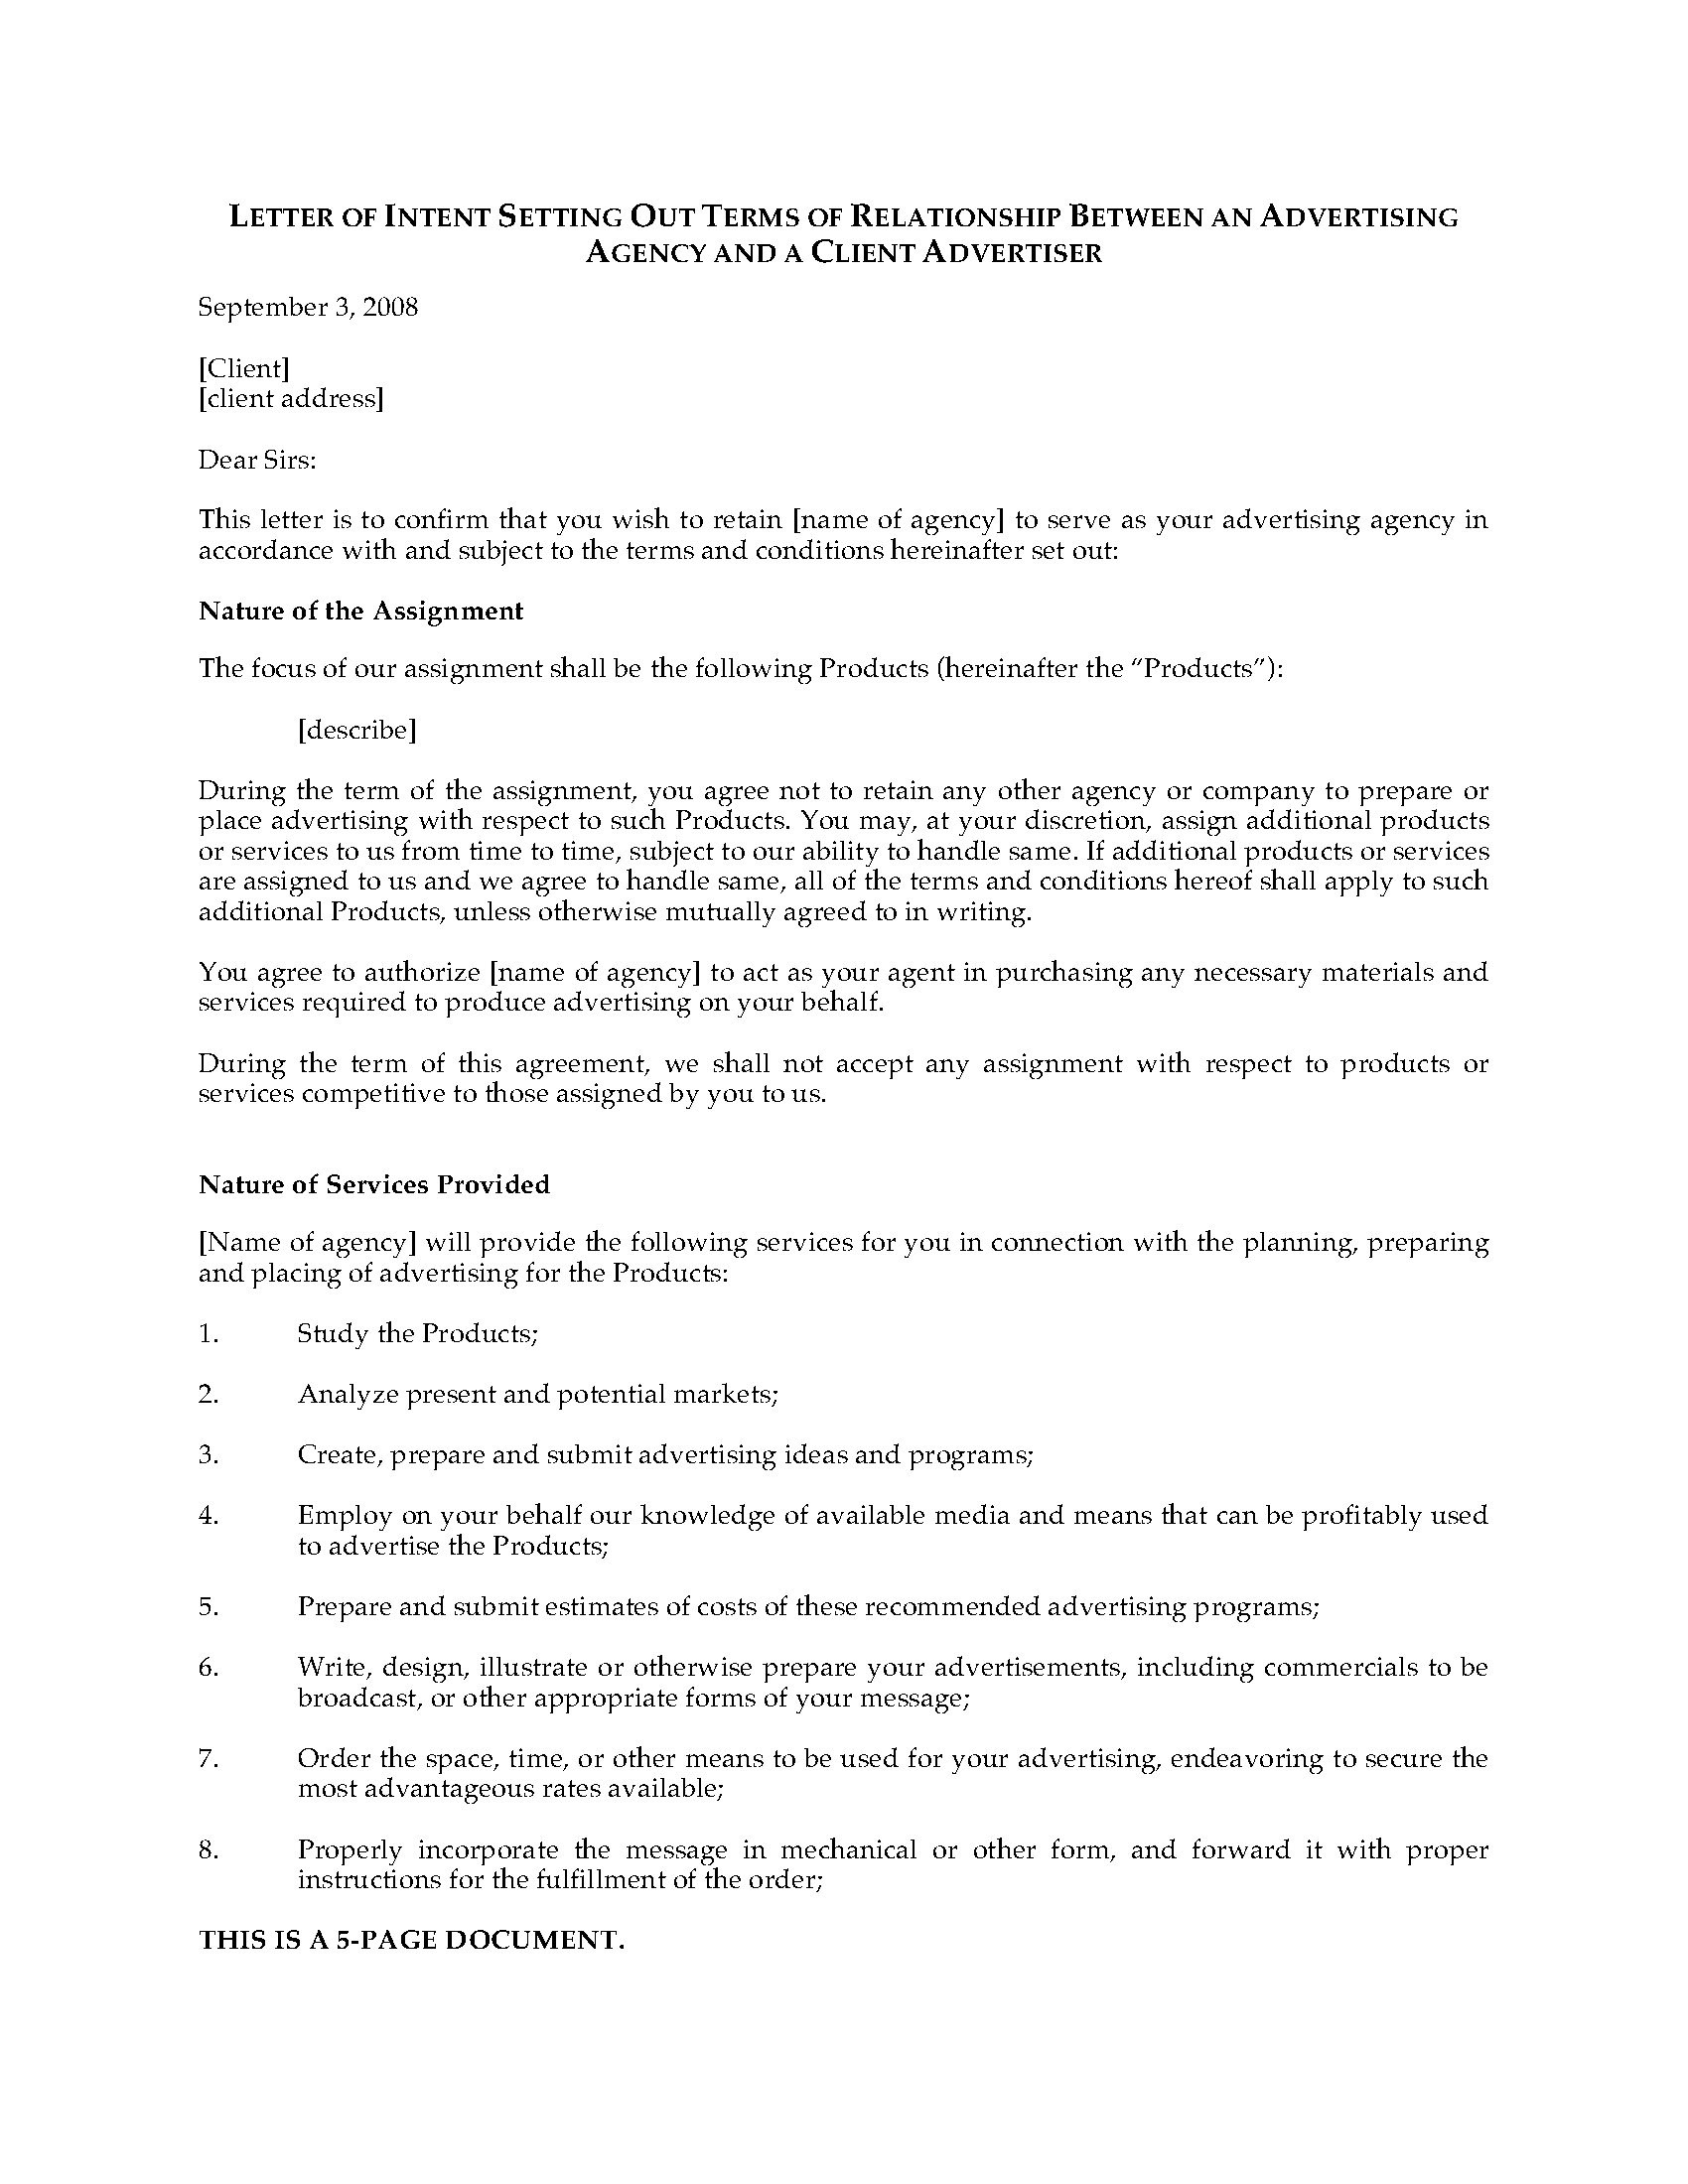 Letter Of Intent to Hire Template - Letter Intent to Hire Template